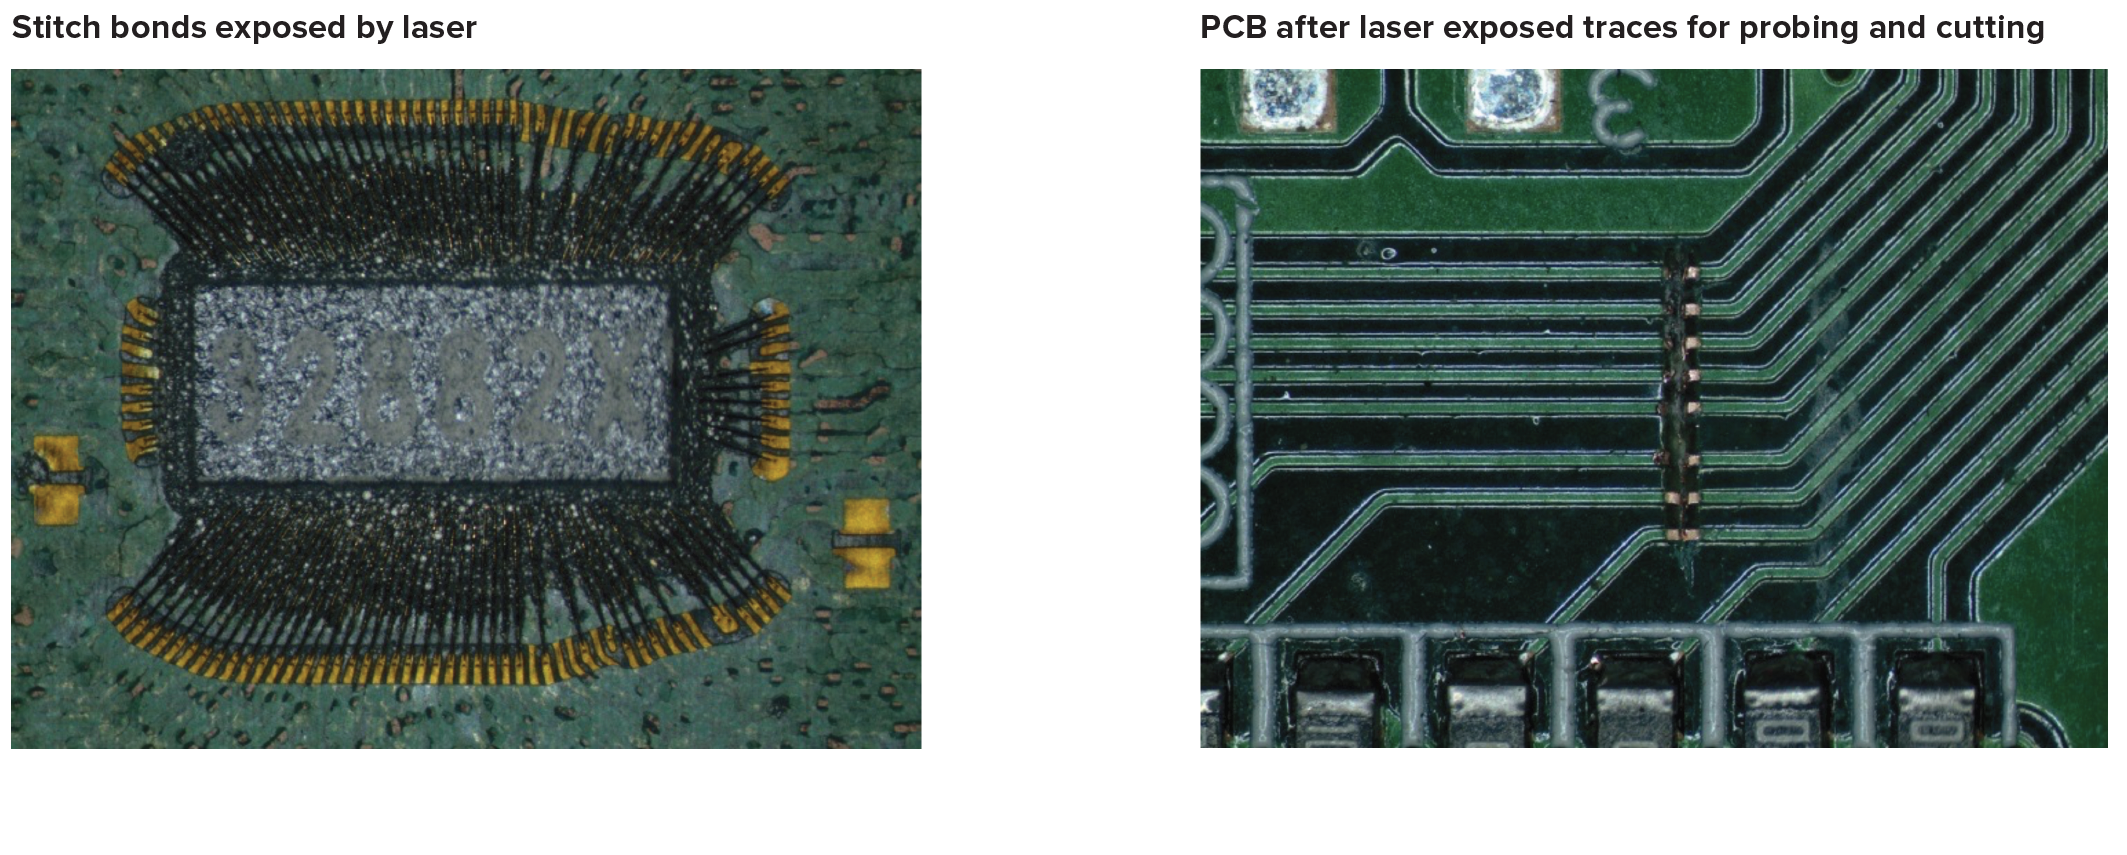 Stitch bonds exposed by laser, PCB after laser exposed traces for probing and cutting